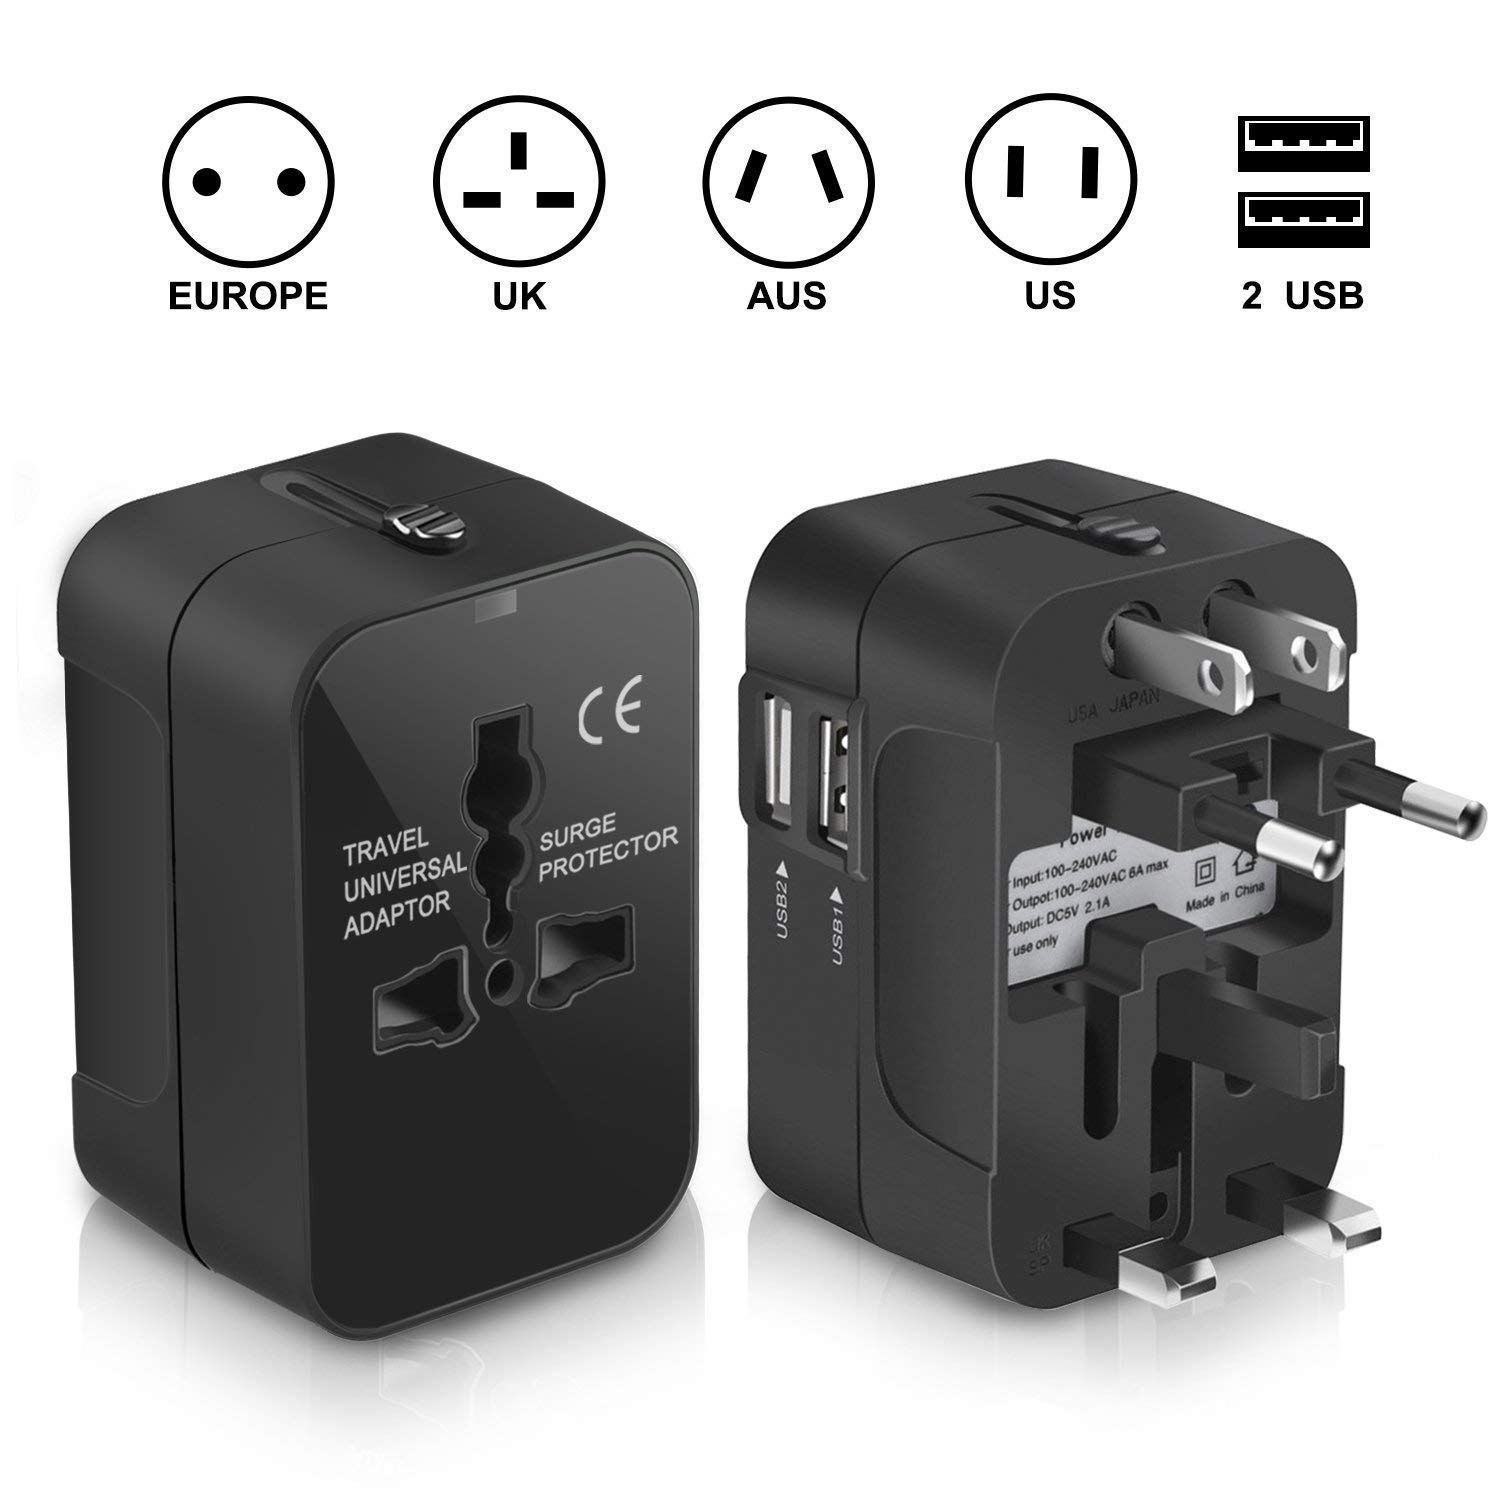 Travel Adapter Trvaadpta Universal All in One International Worldwide Wall Charger AC Power Plug Adapter with Dual USB Ports for USA EU UK AUS 180 Countries